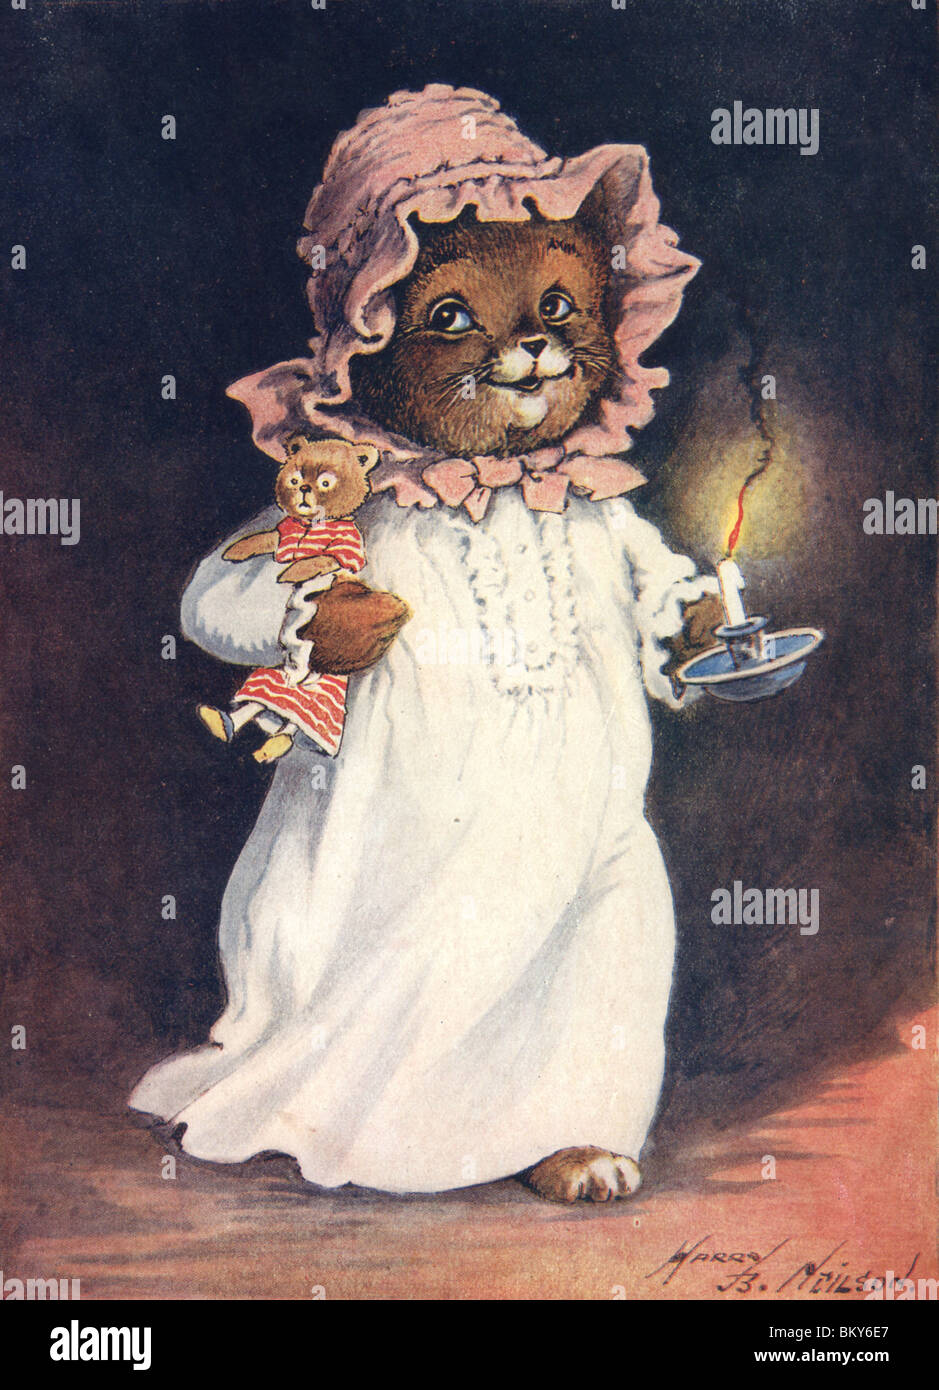 Cat in her Nightie Holding a Candle - Stock Image